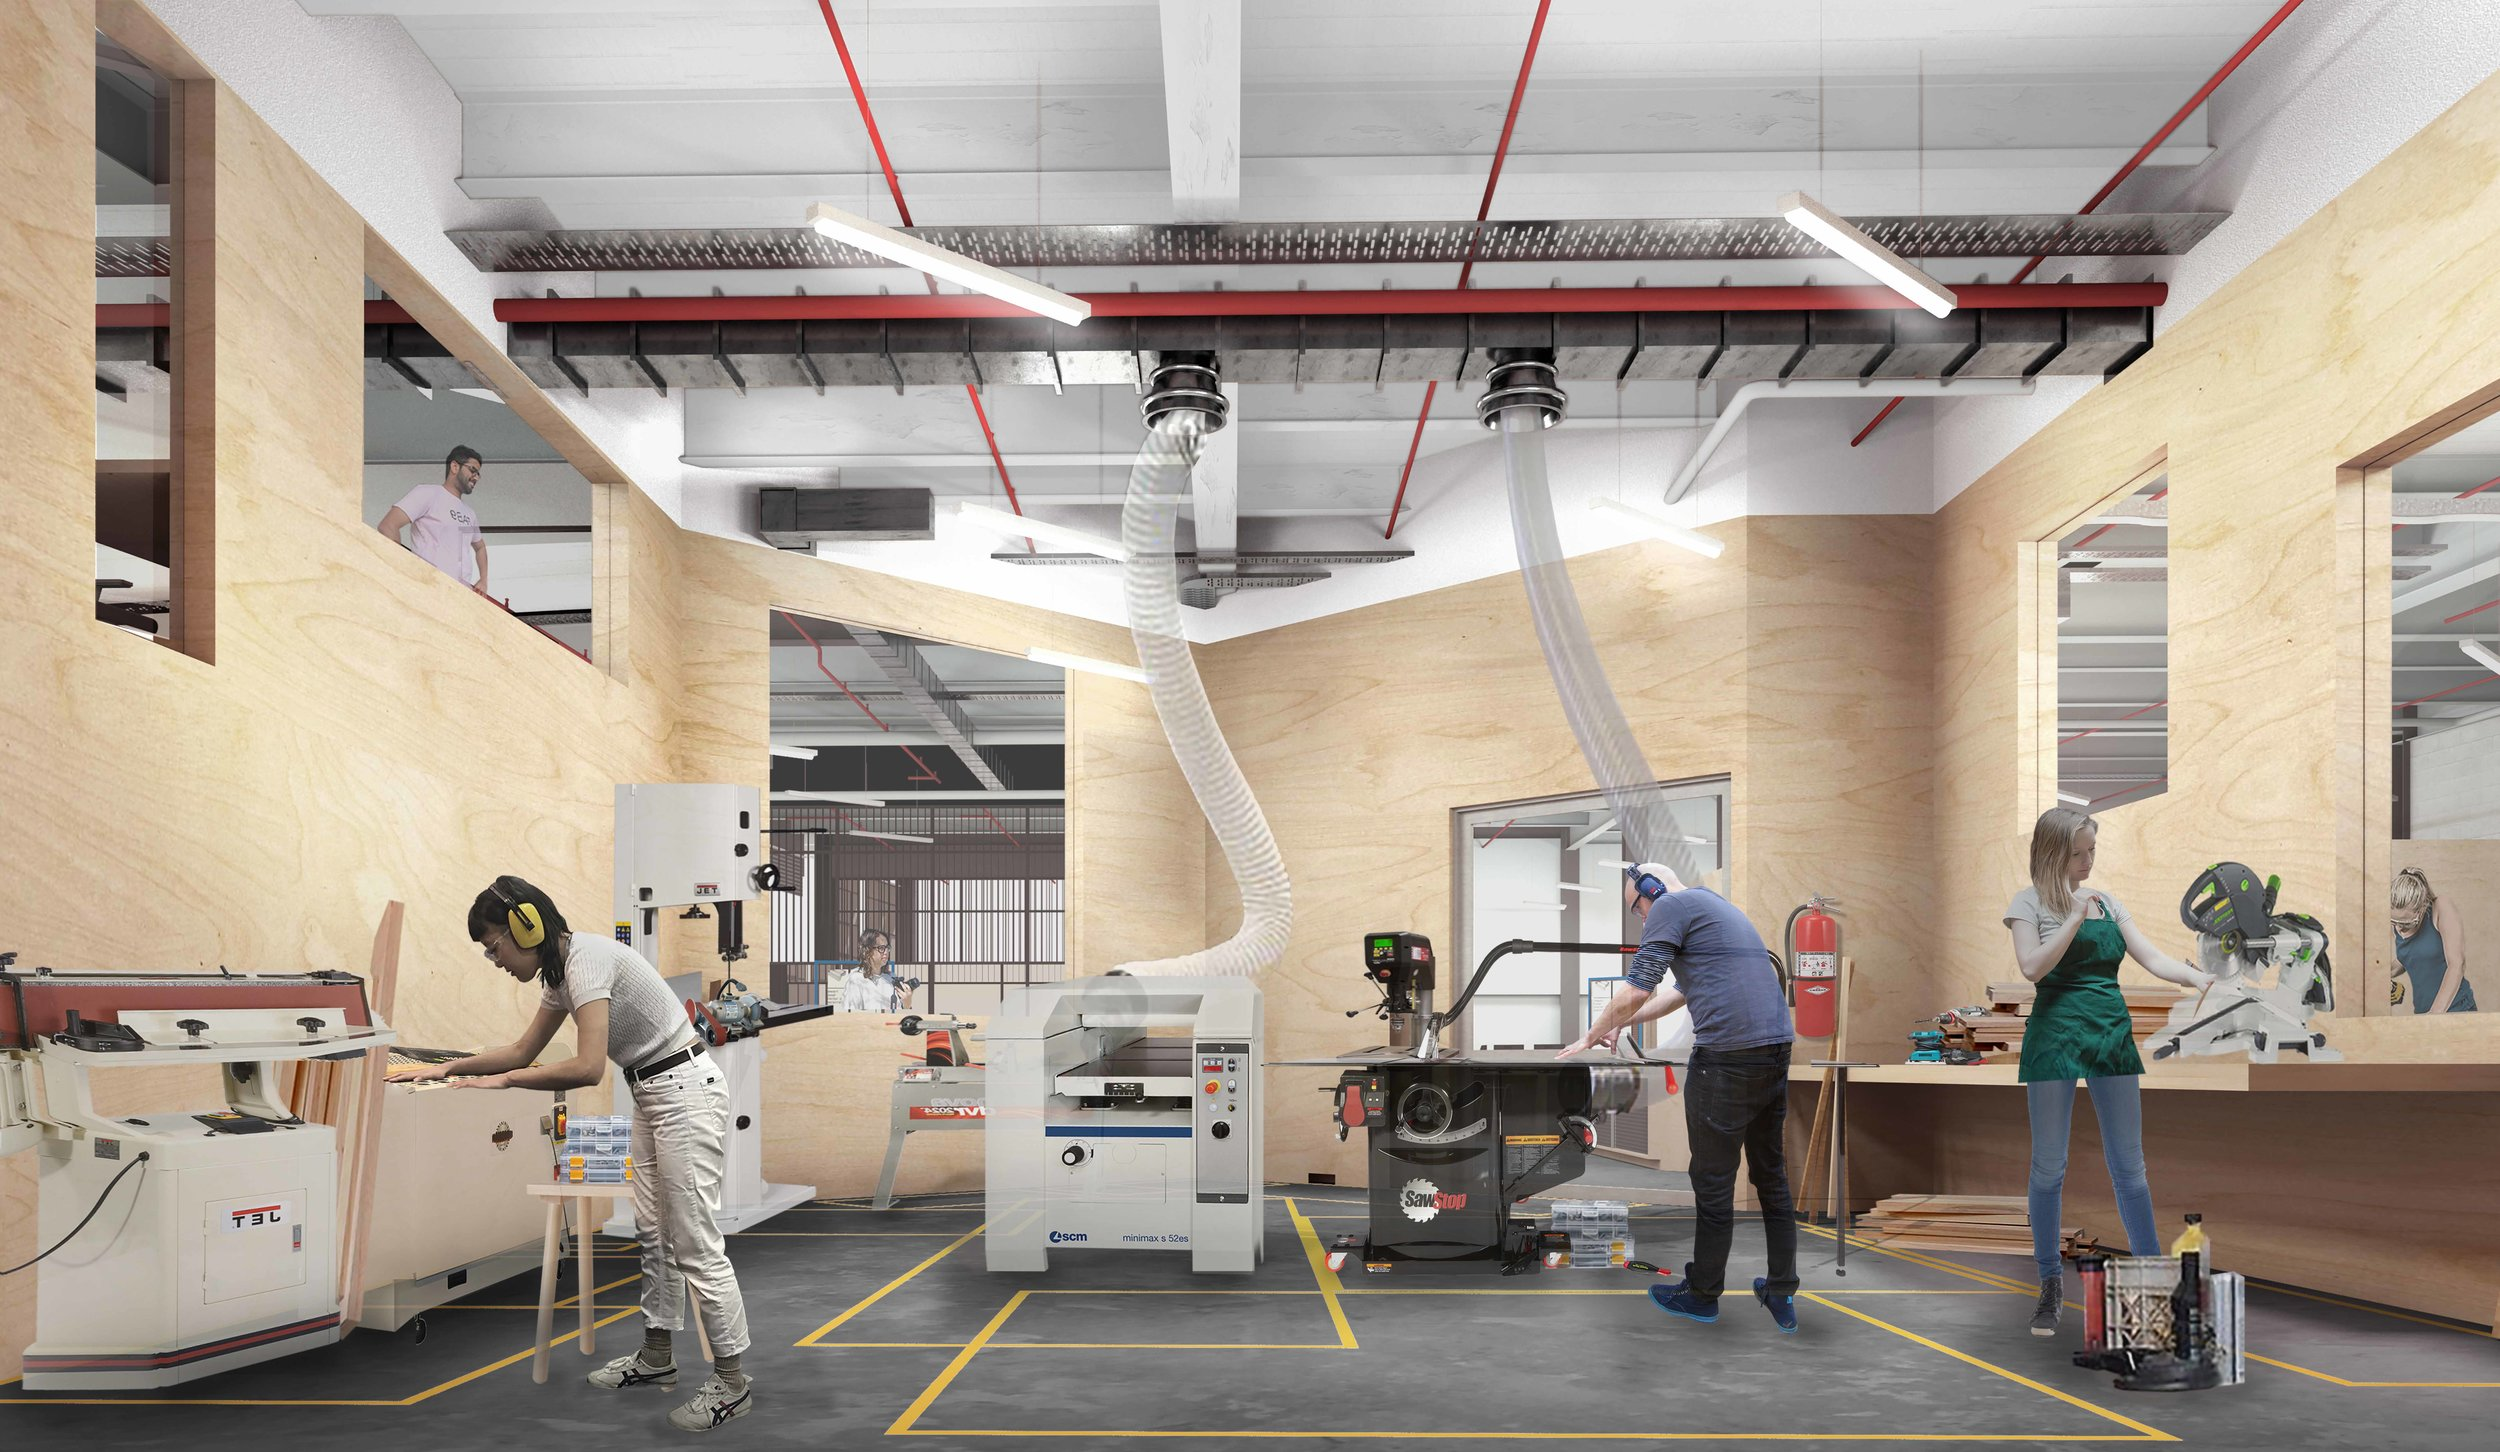 An artist's impression of what to expect inside FAB9's Makerspace.